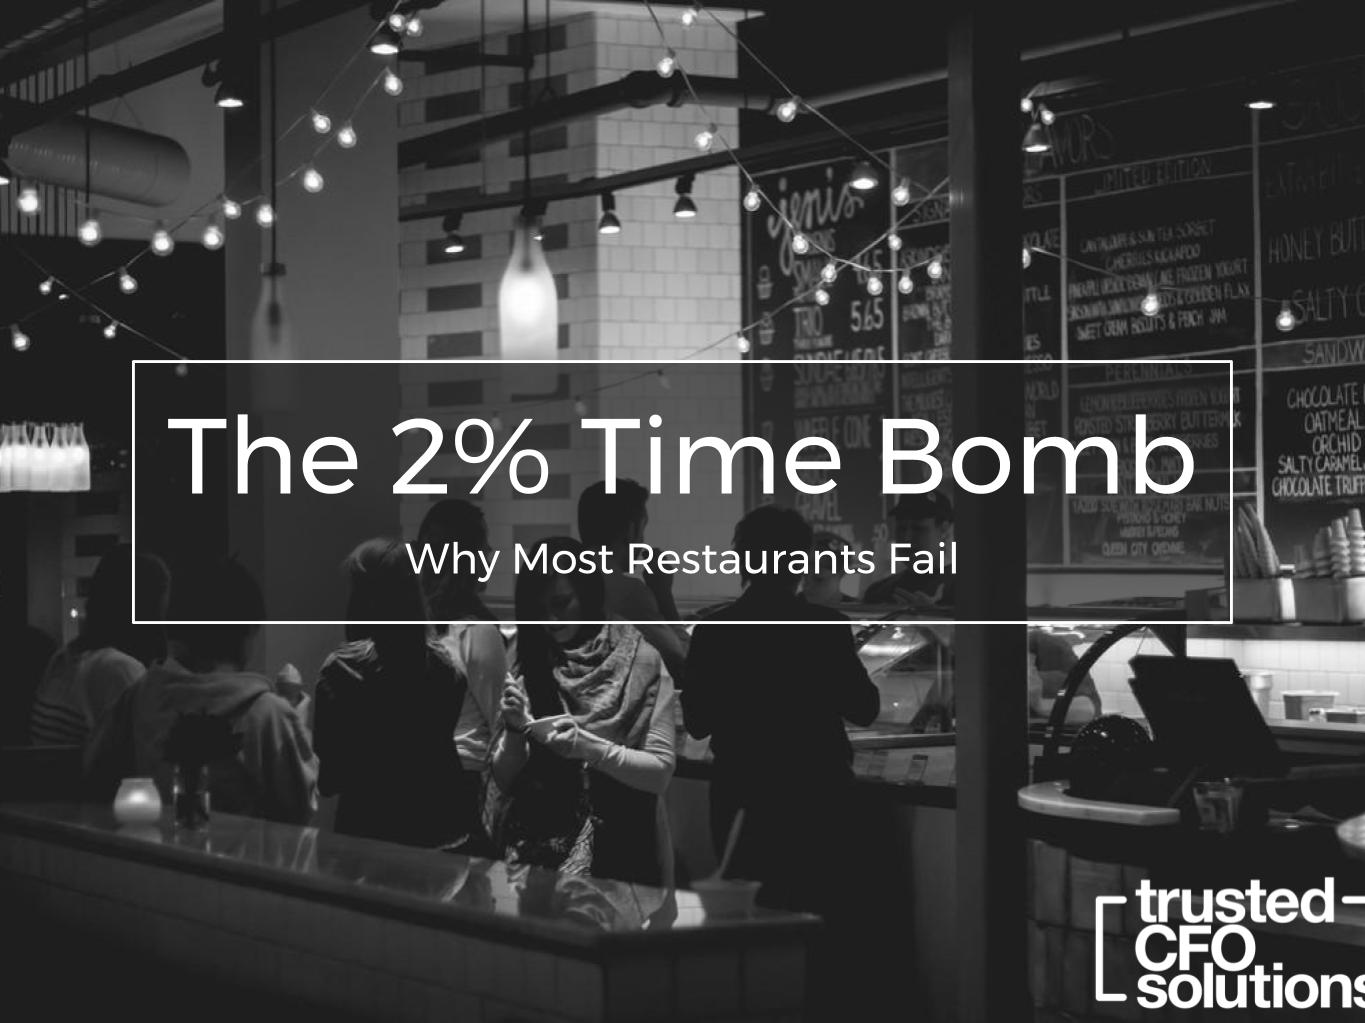 What Is The 2% Time Bomb Presentation